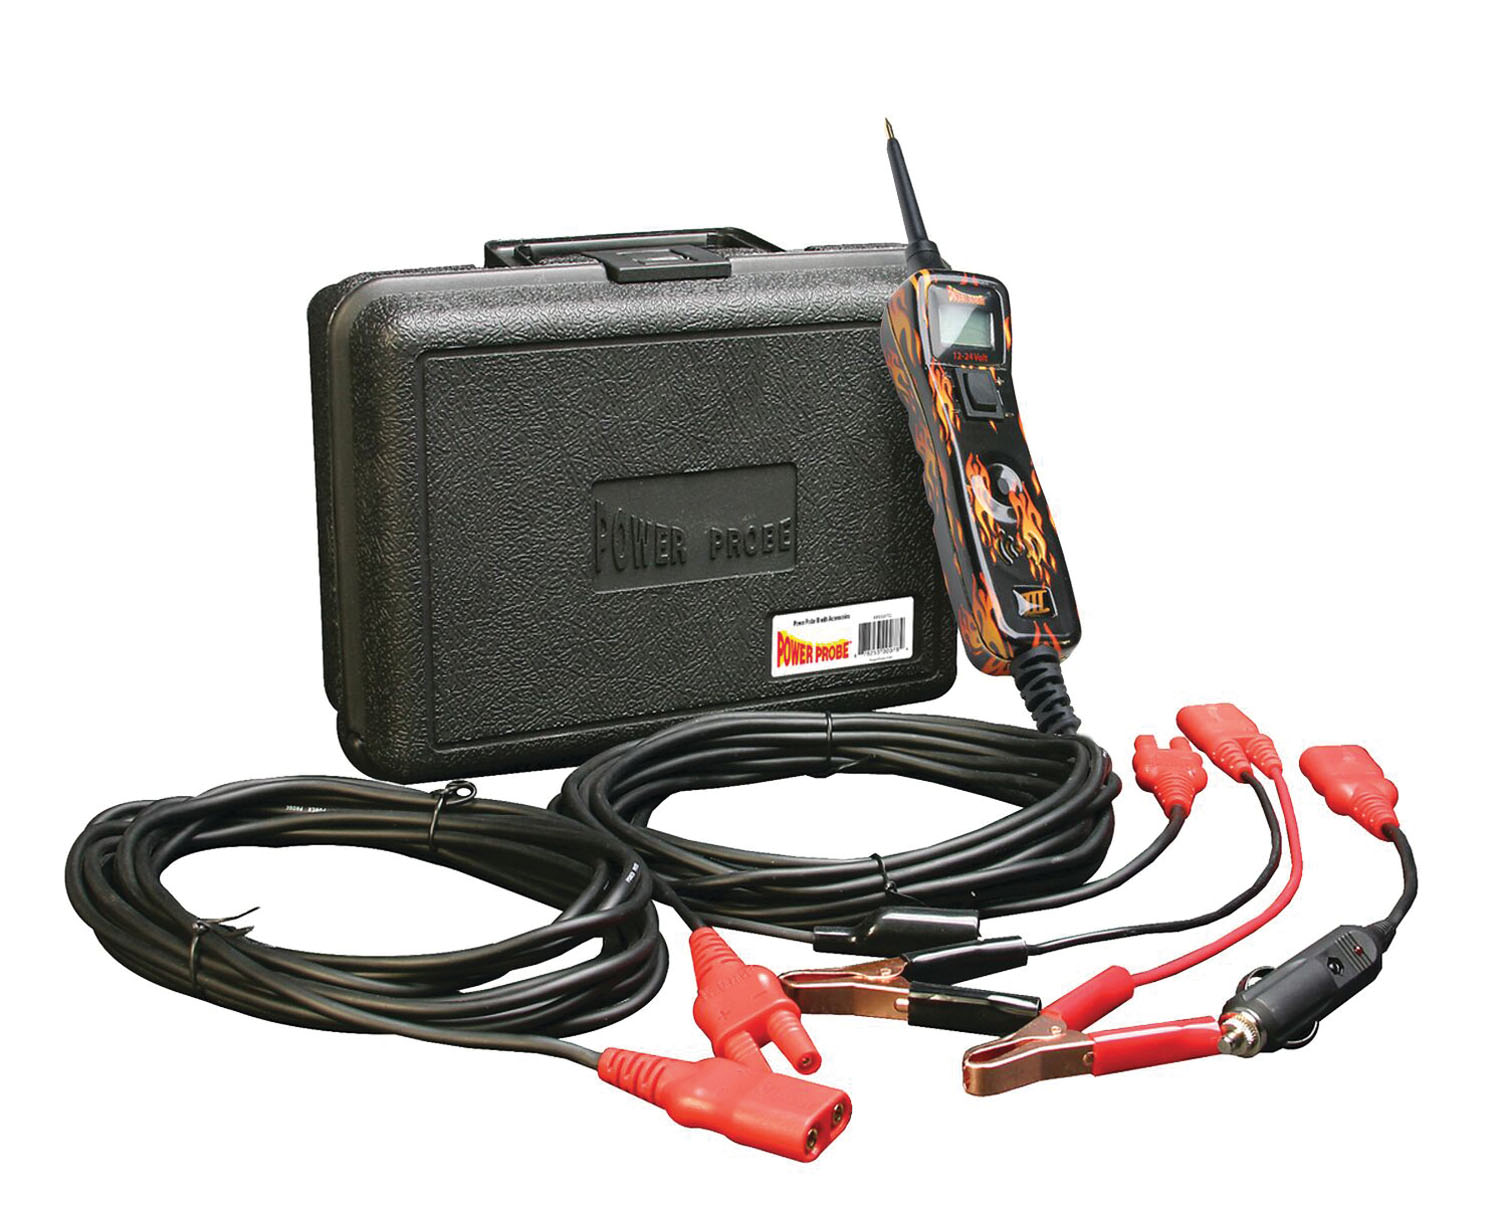 Power Probe Pp319camo Limited Edition Power Probe Iii Circuit Tester